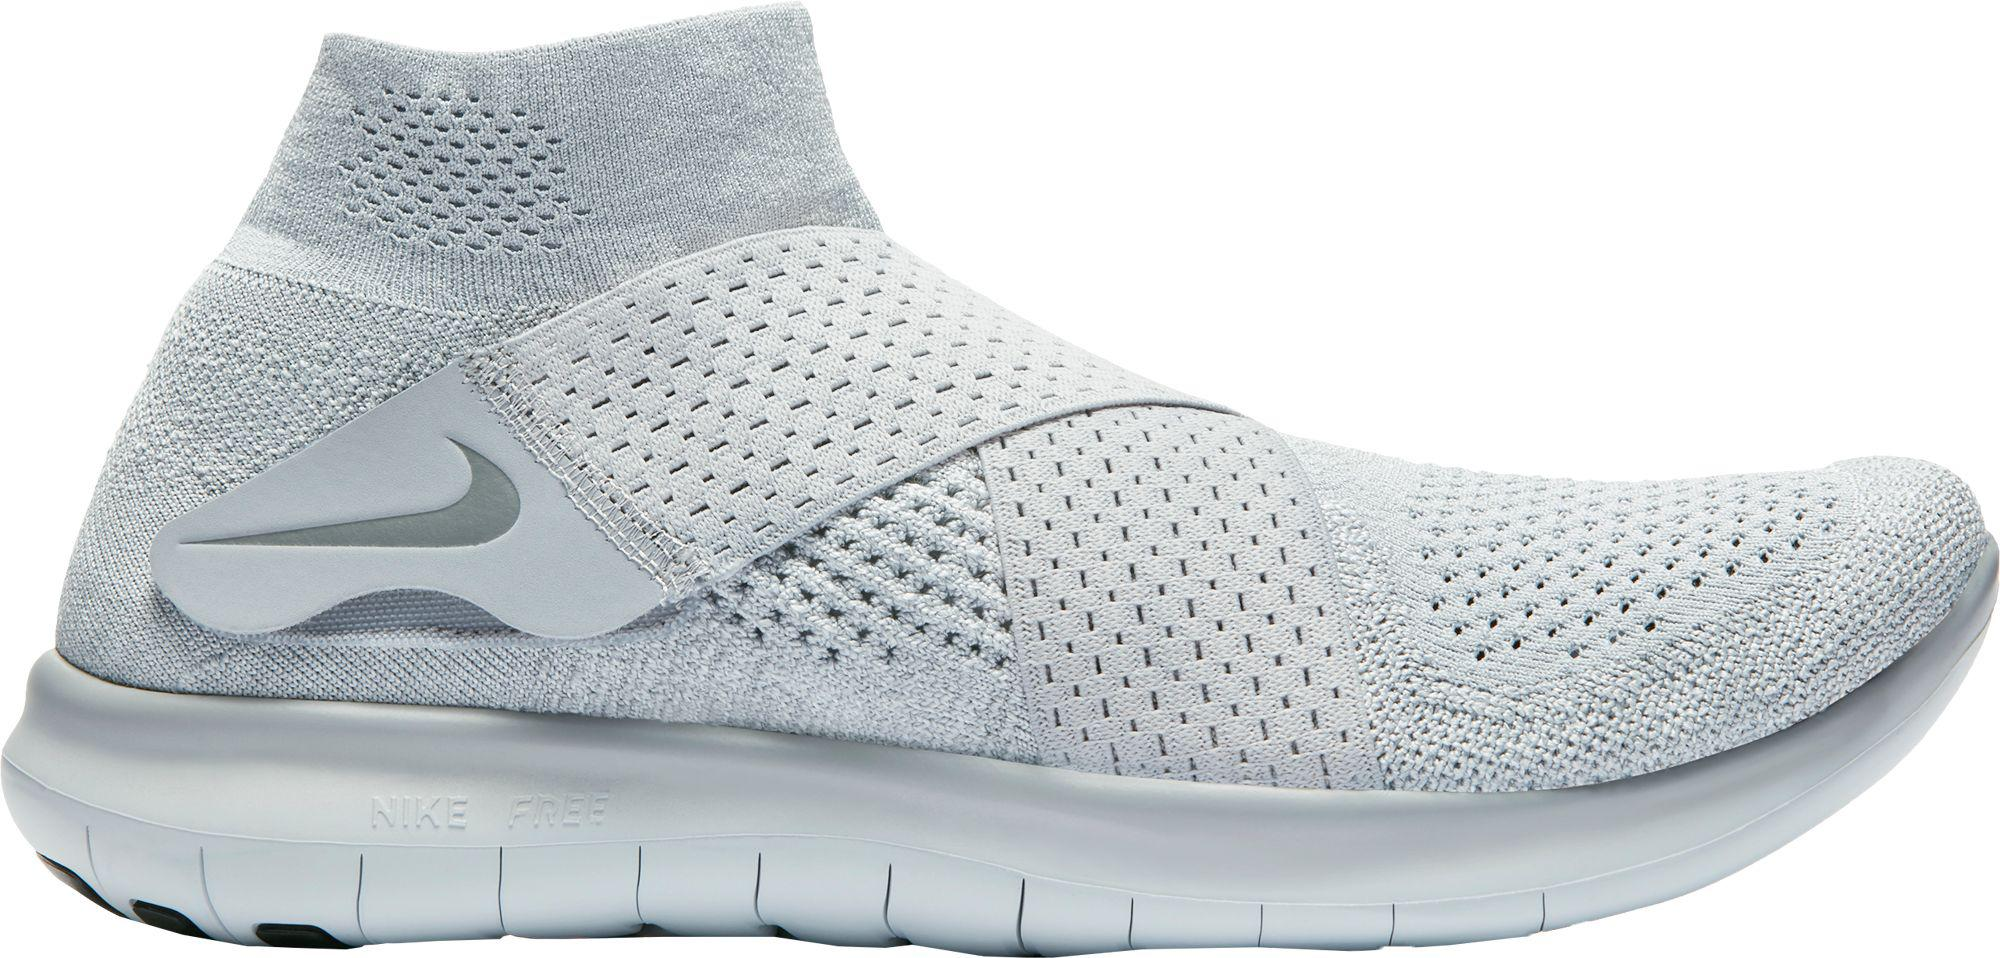 36d48ec001a Lyst - Nike Free Rn Motion Flyknit 2 Running Shoes in Gray for Men